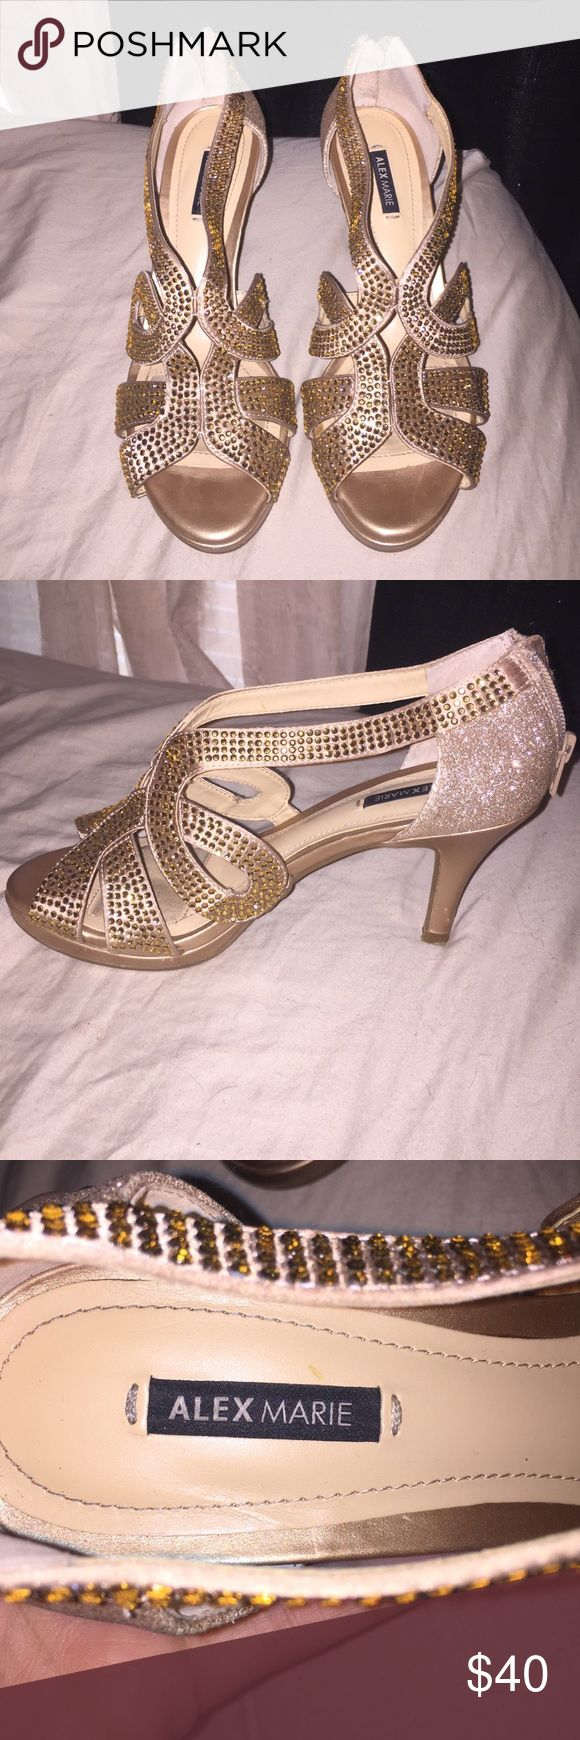 Alex Marie gold sandal heels. Worn once for a wedding. Small scratches on heel, but hardly noticeable. Alex Marie Shoes Heels